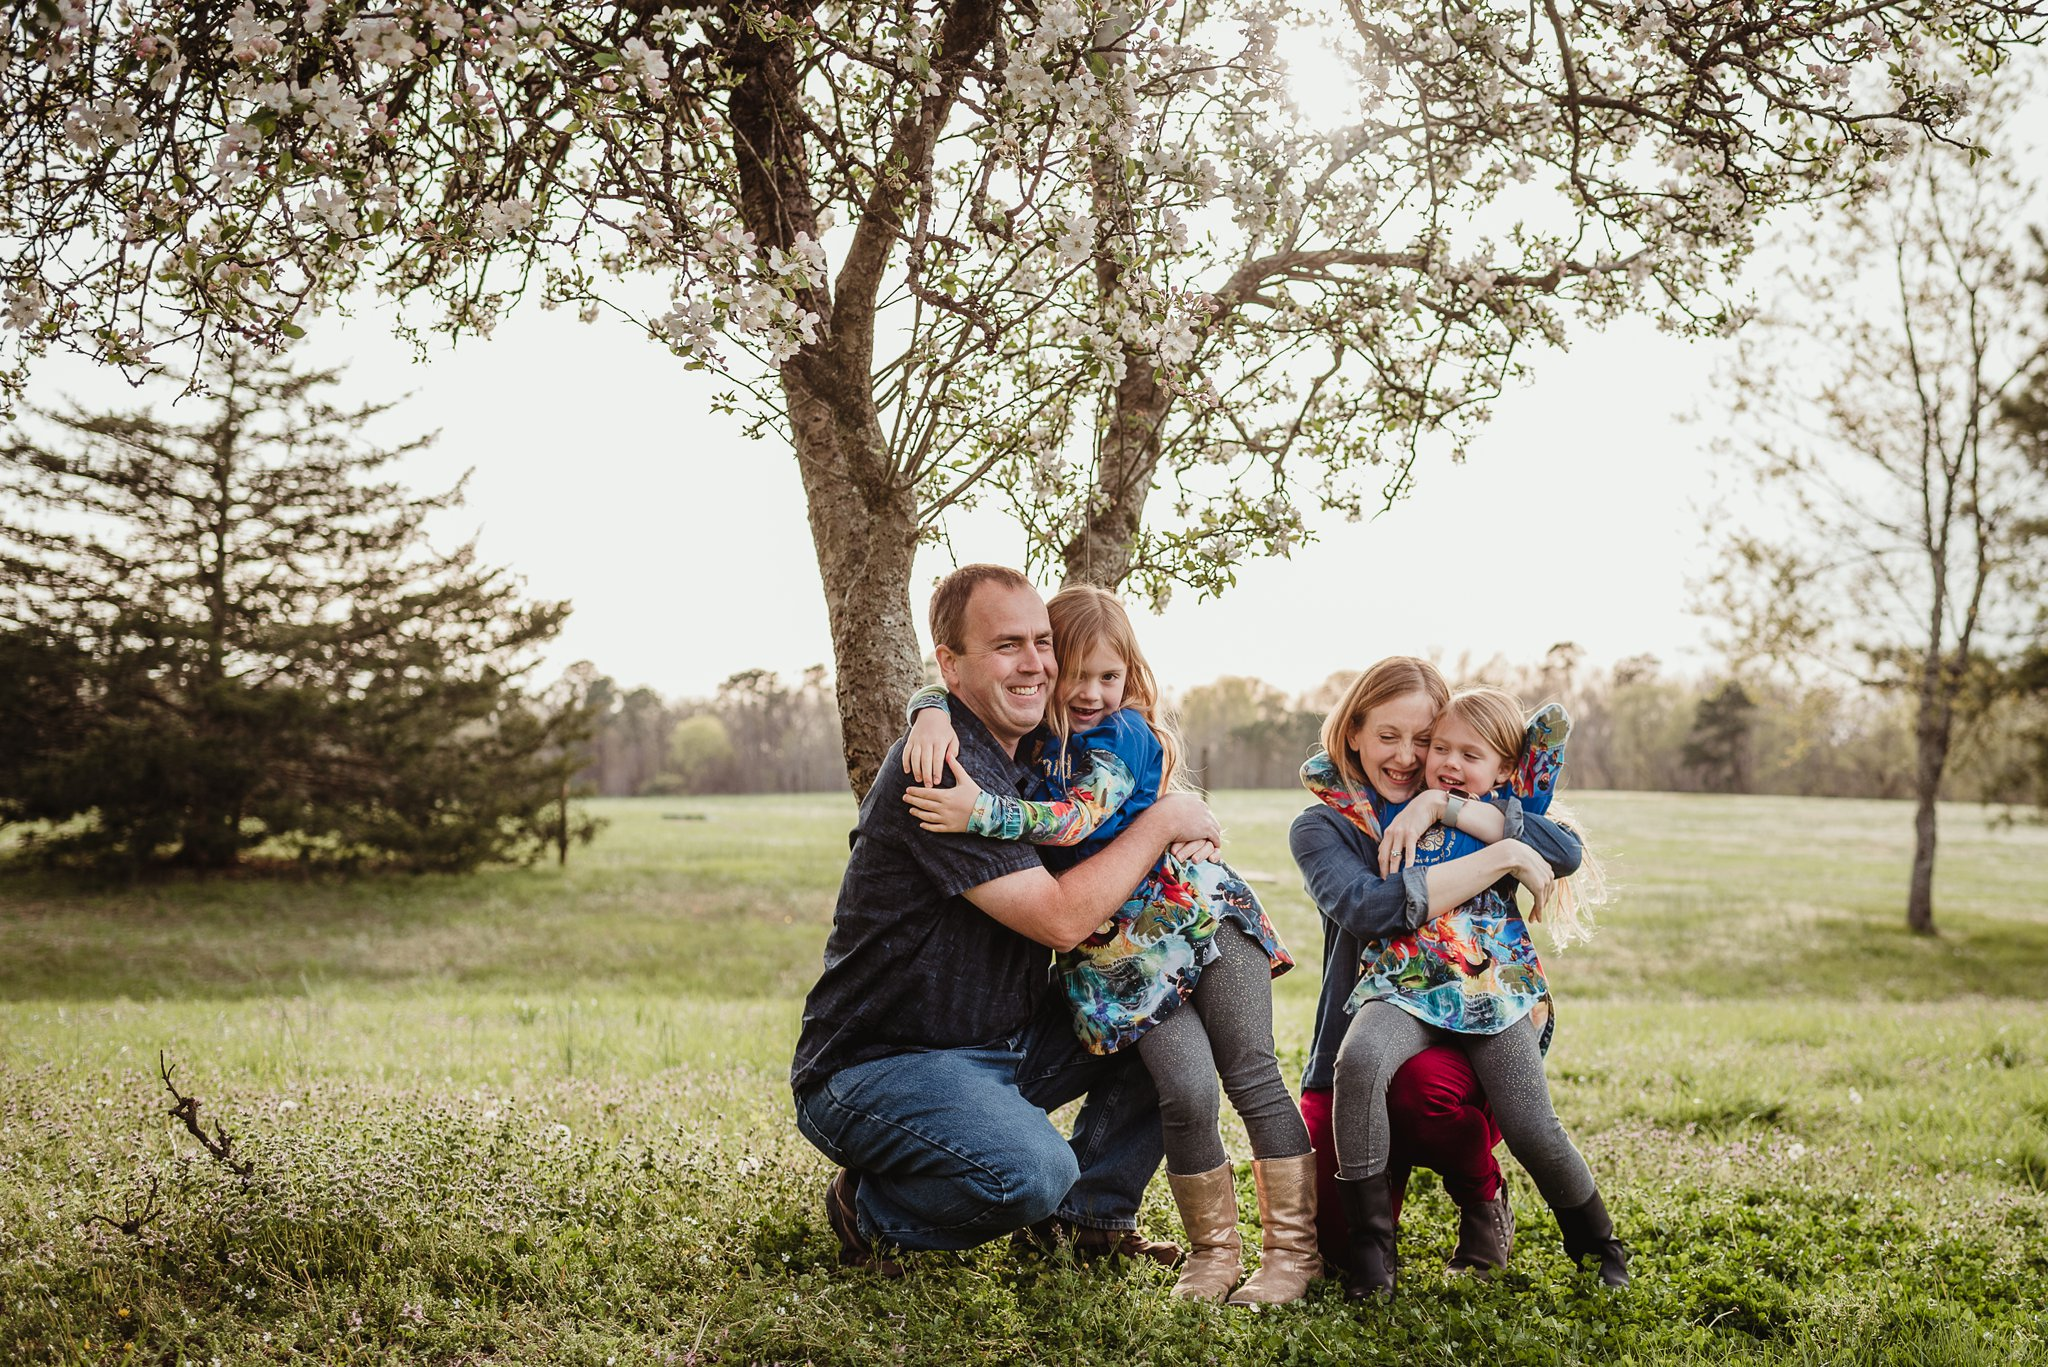 The daughters hug their parents during their family photo session with Rose Trail Images in Wake Forest, North Carolina.